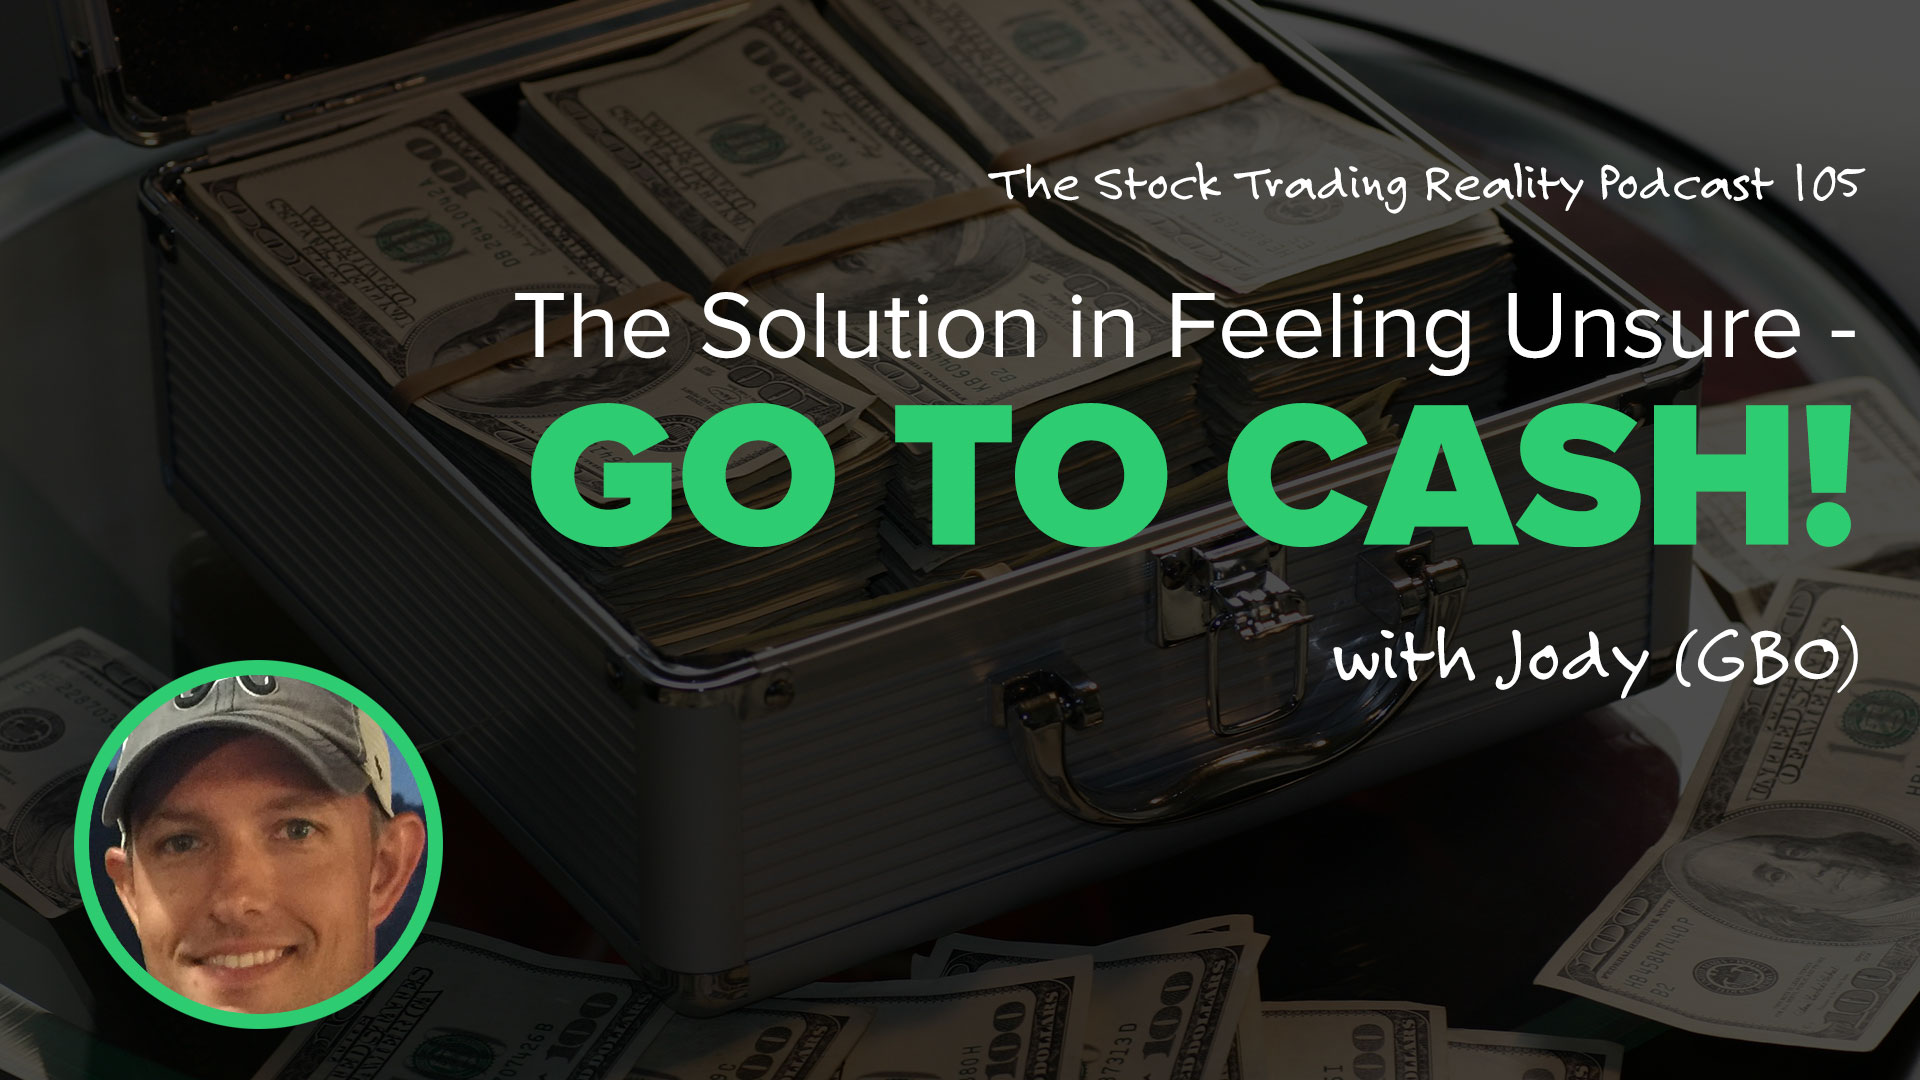 STR 105: The Solution in Feeling Unsure - Go to Cash!